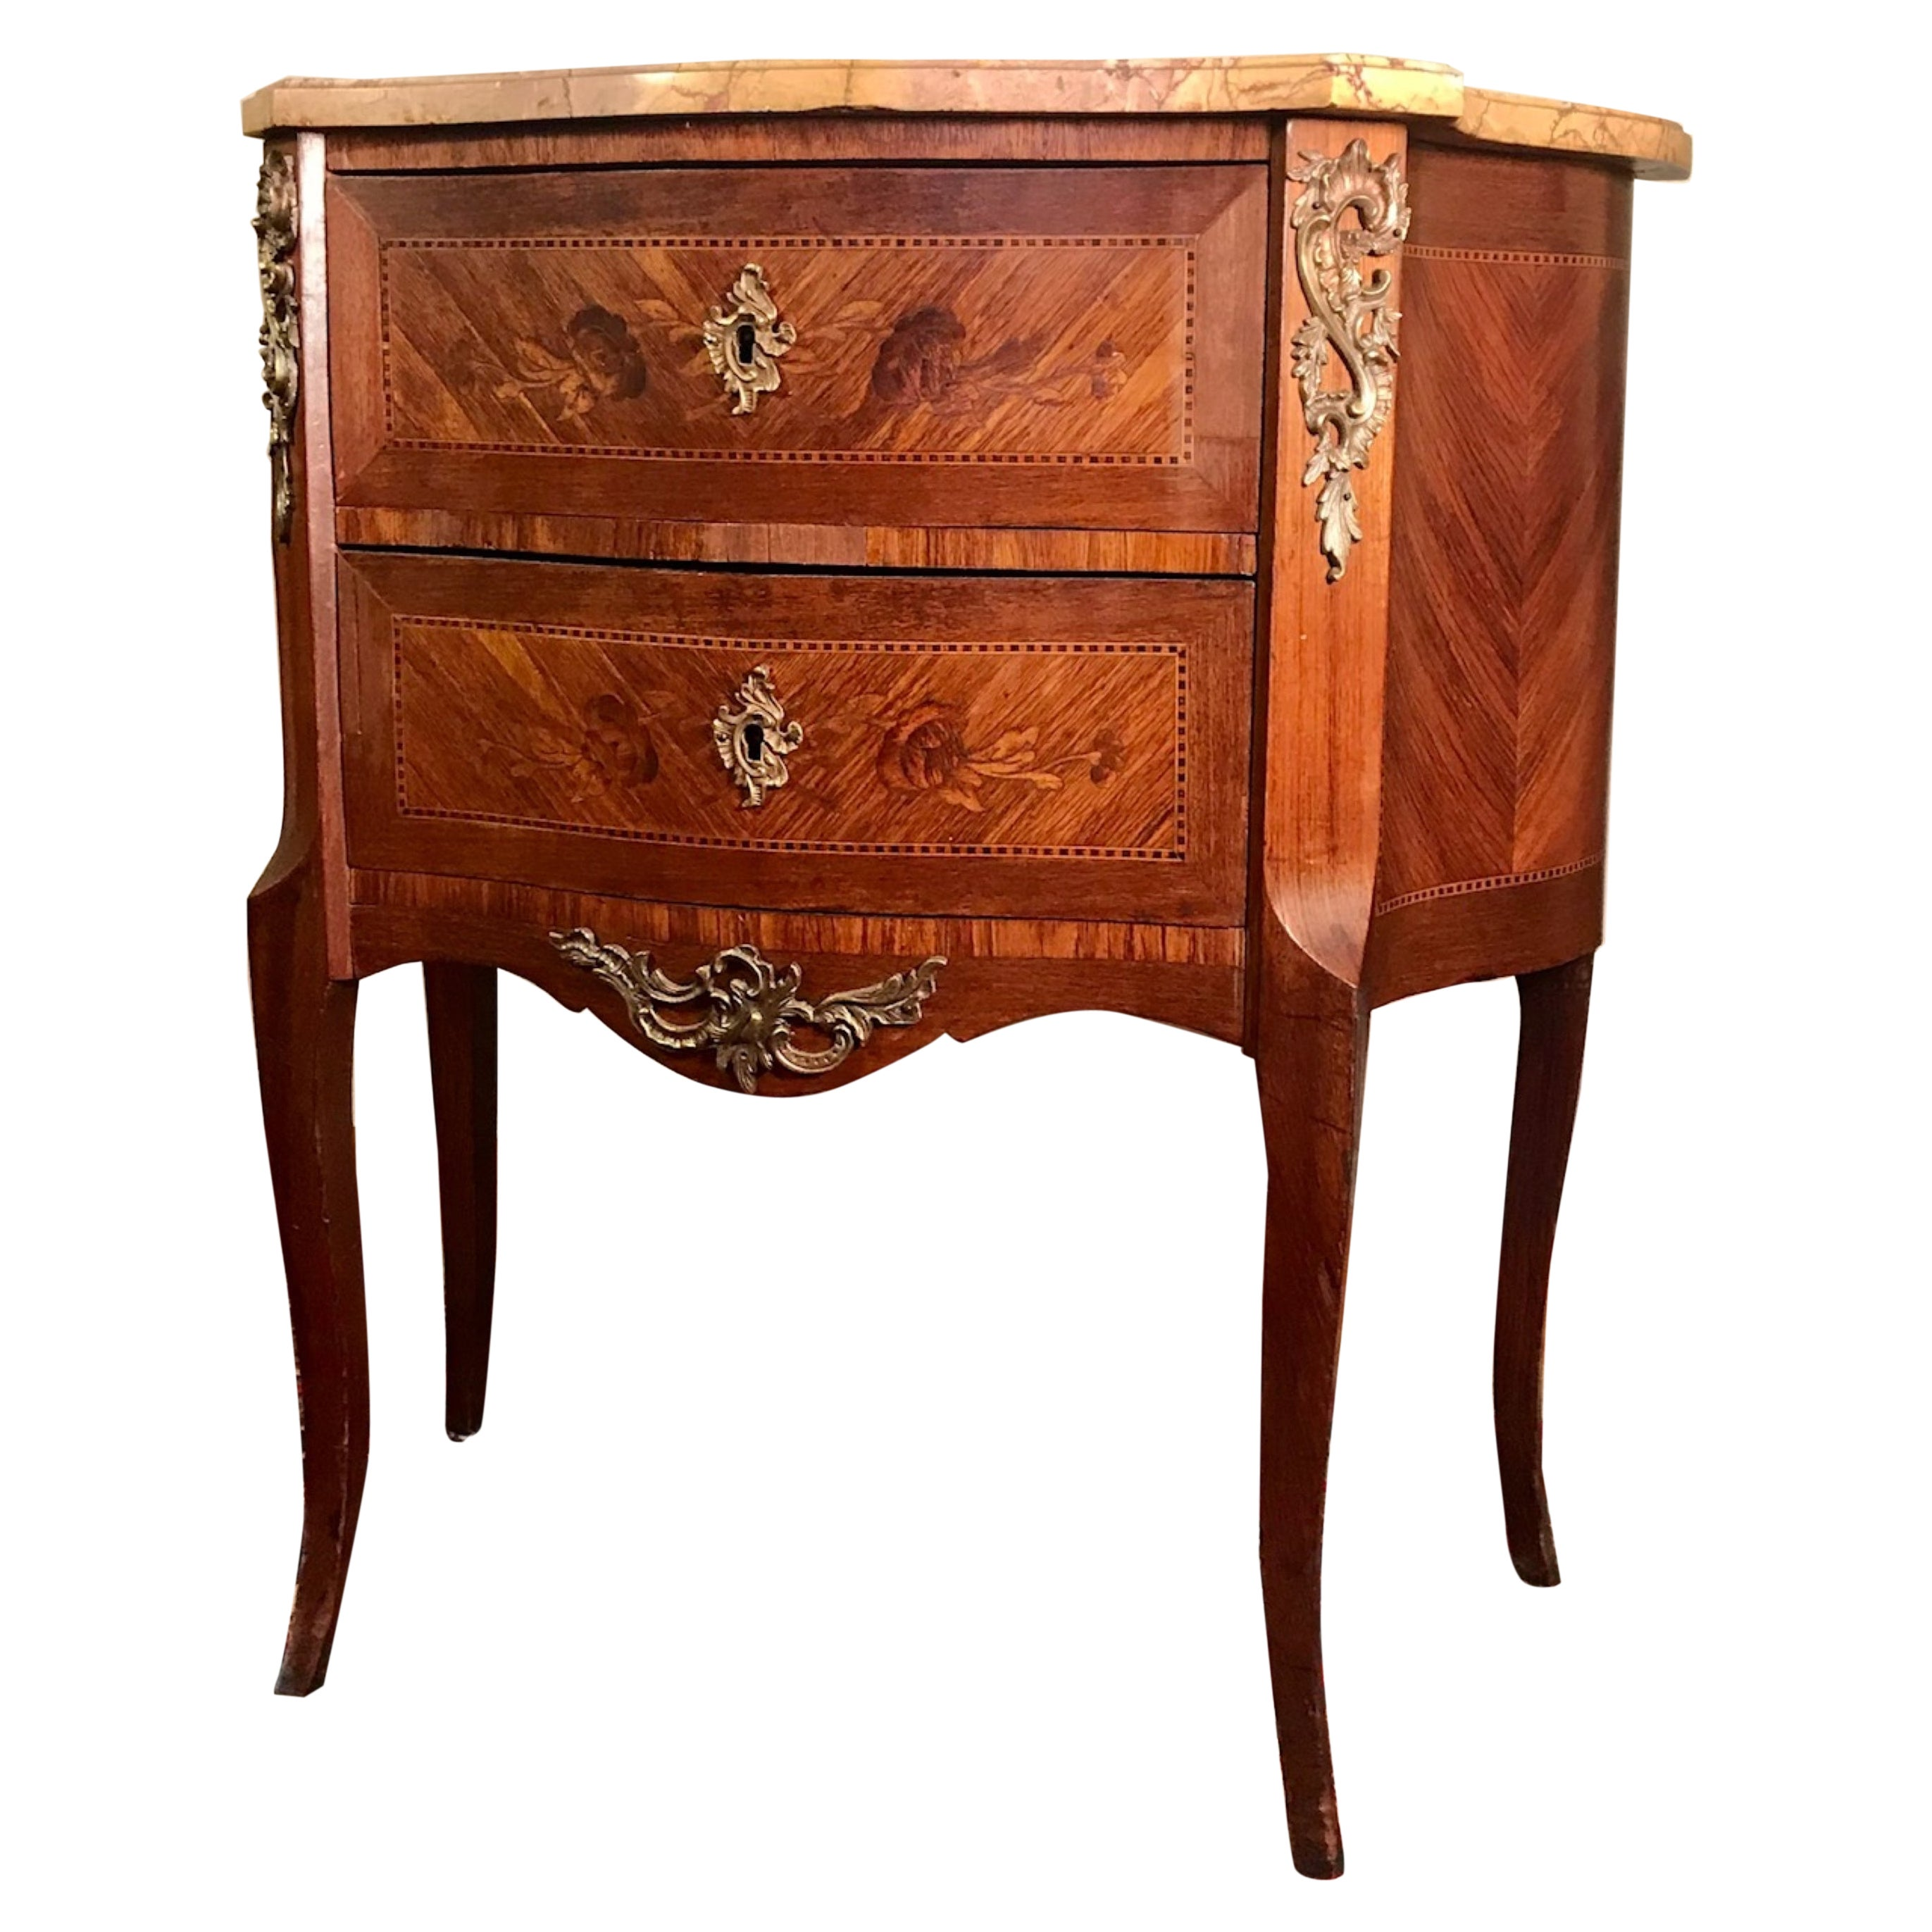 19th C. Louis XVI Style Marquetry 2-drawer Marble Commode